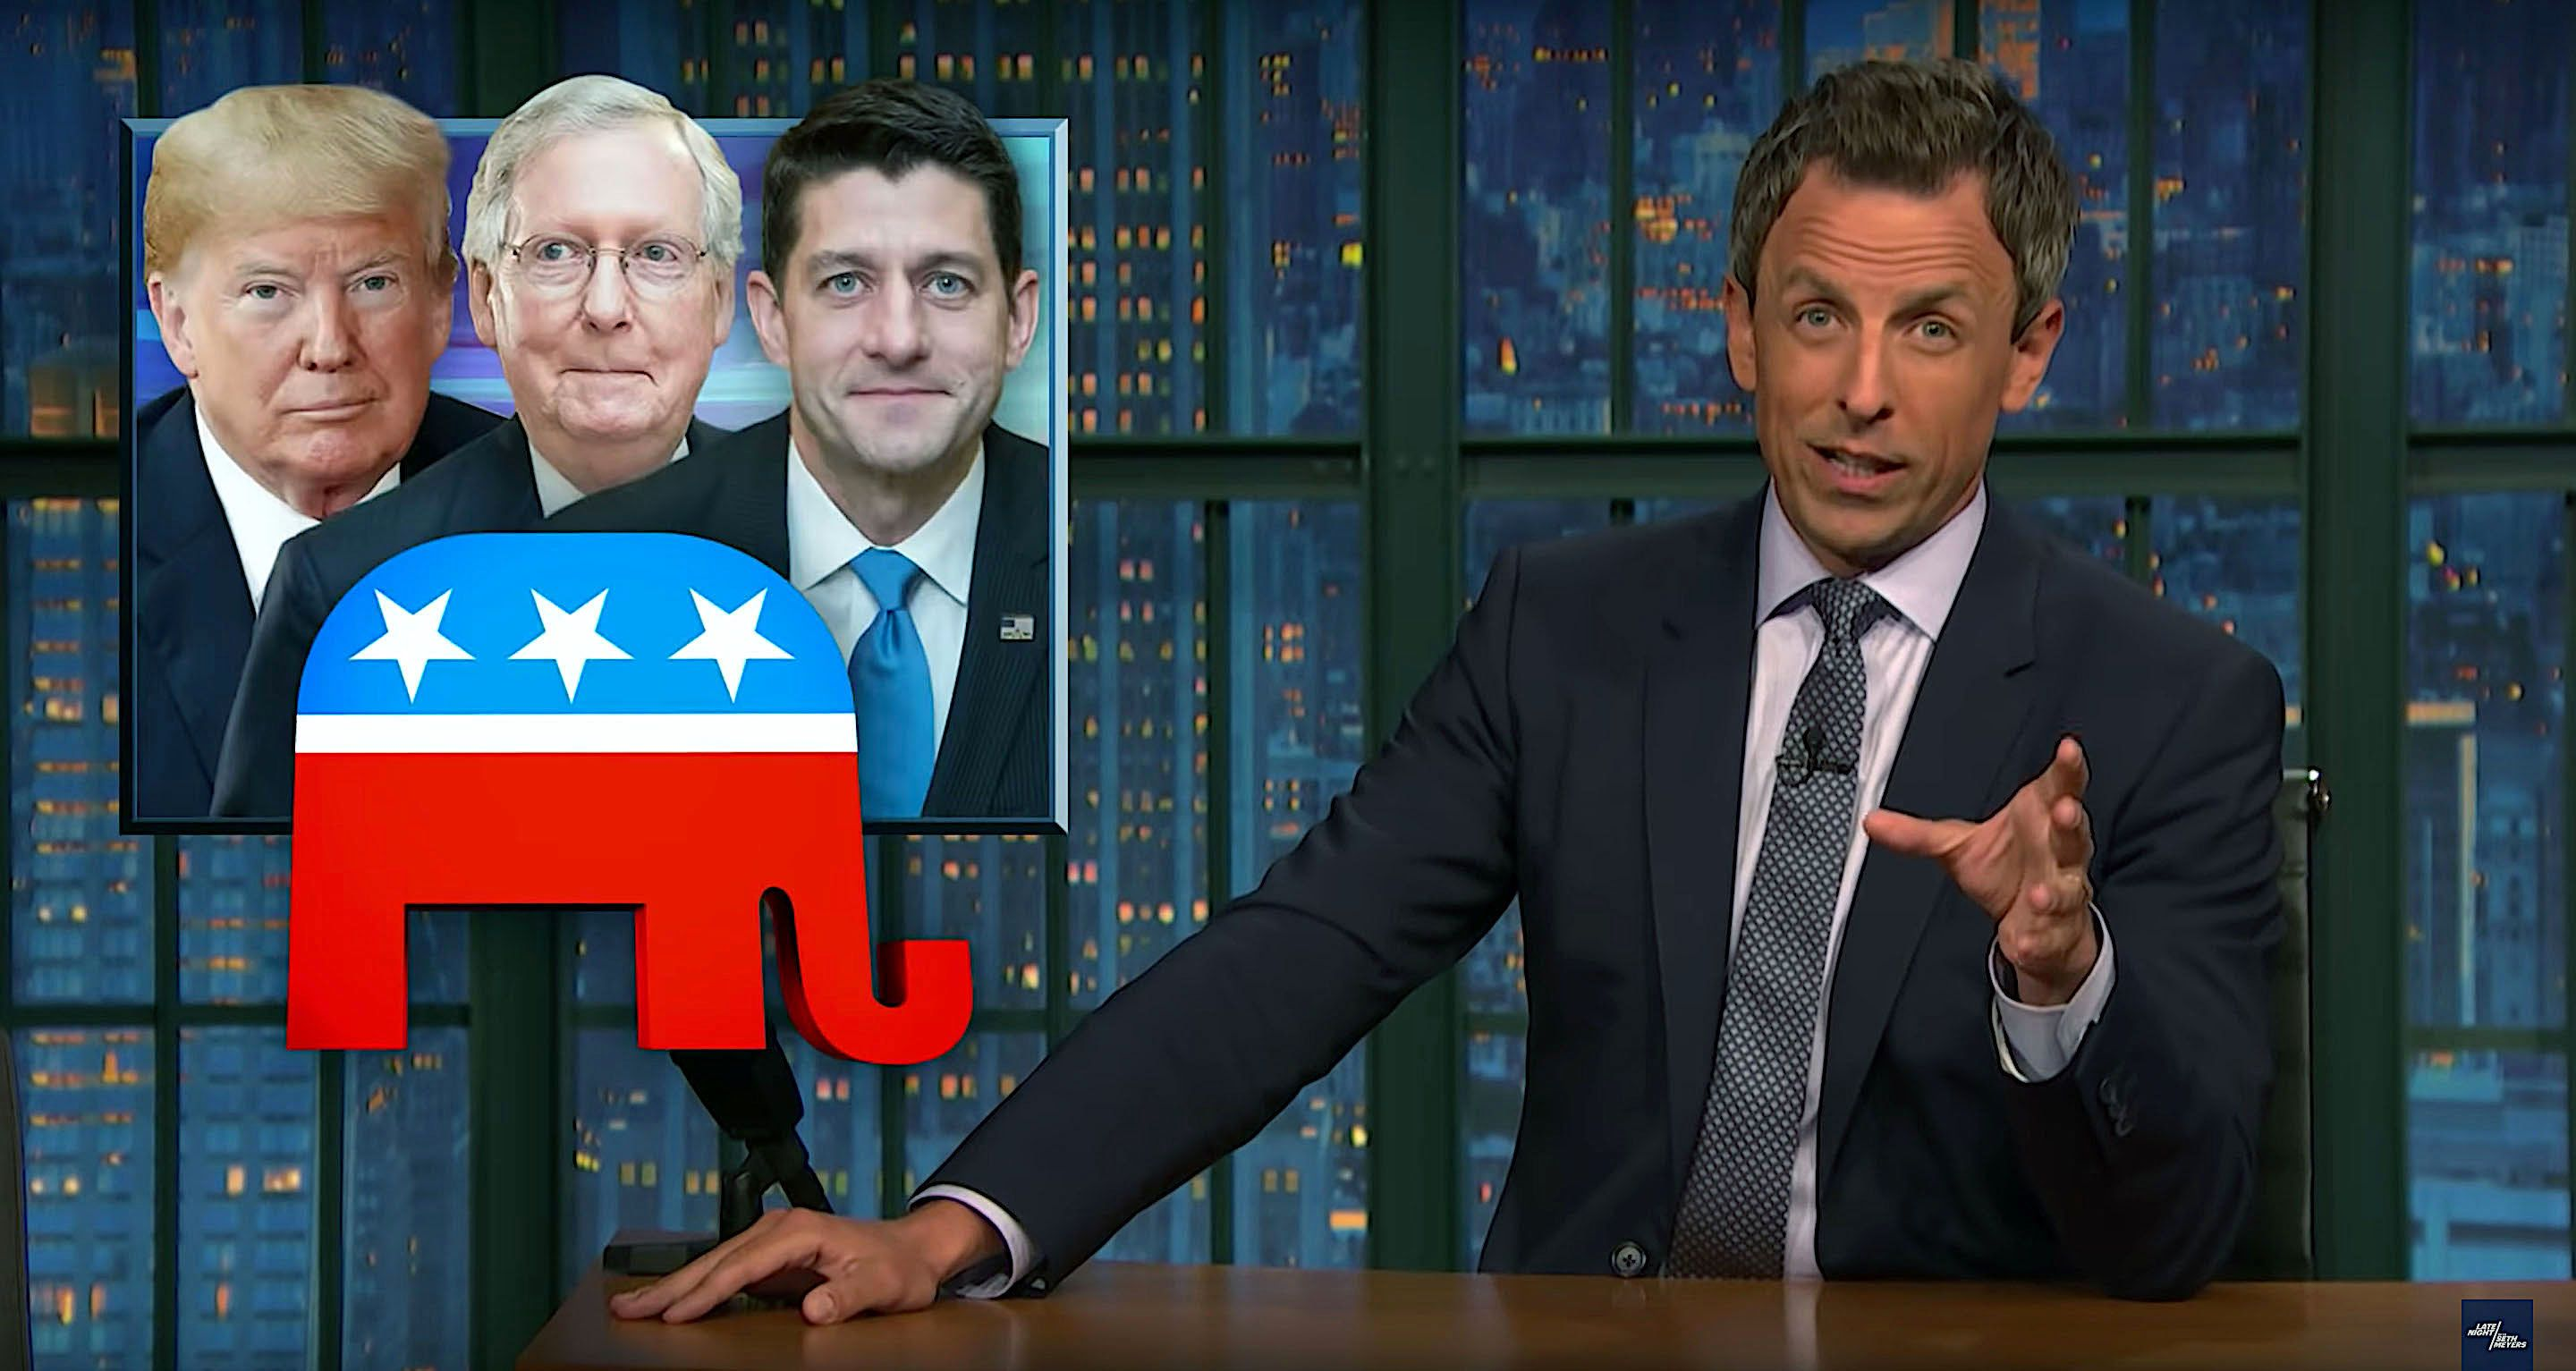 Seth Meyers of Late Night says Republicans are refusing to hold President Donald Trump accountable